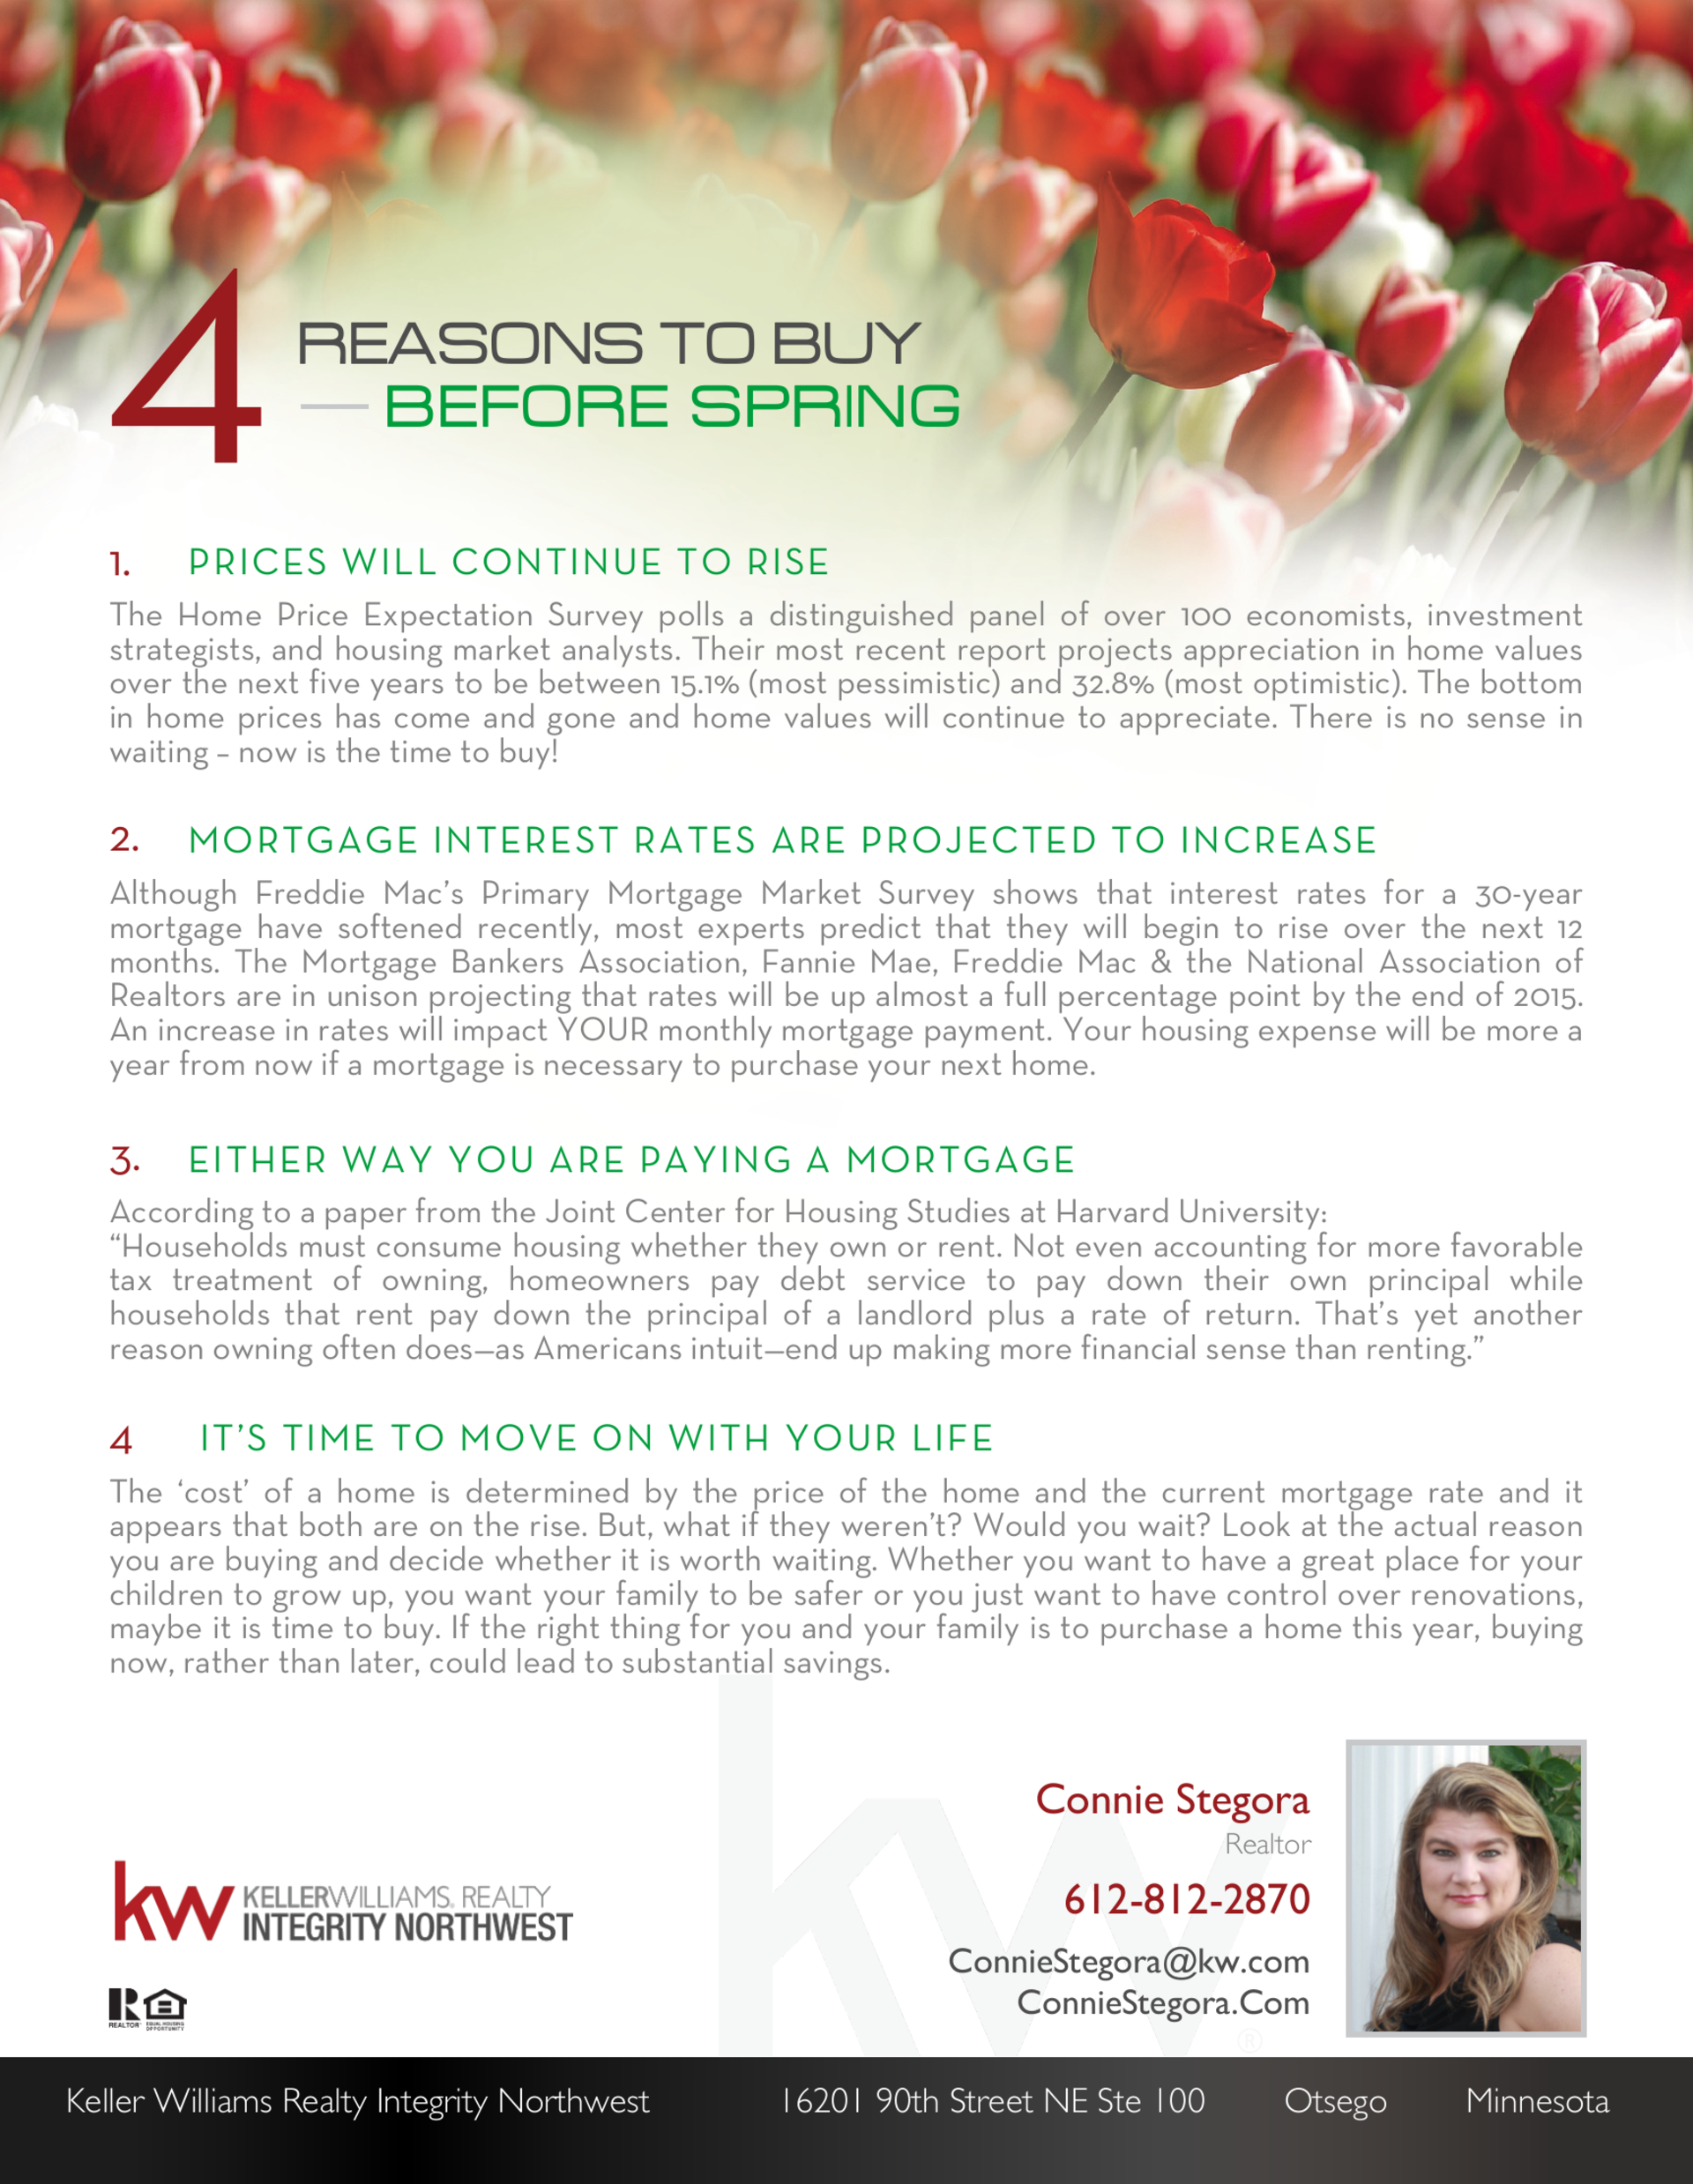 4 Reasons to Buy Before Spring